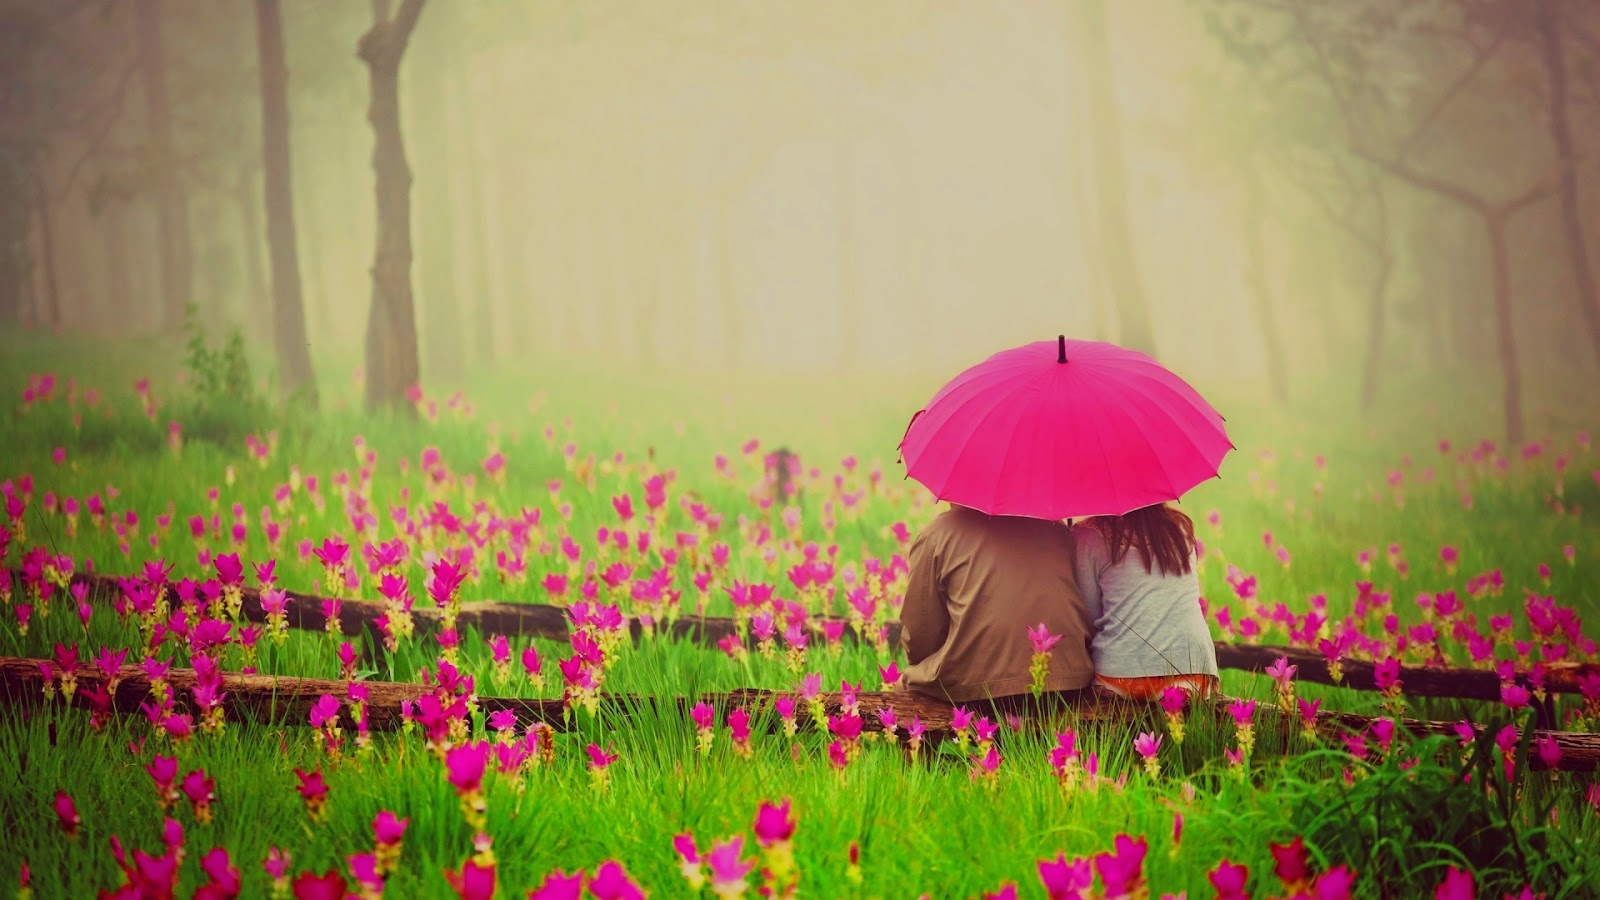 Romantic couple in garden under umbrella wallpaper